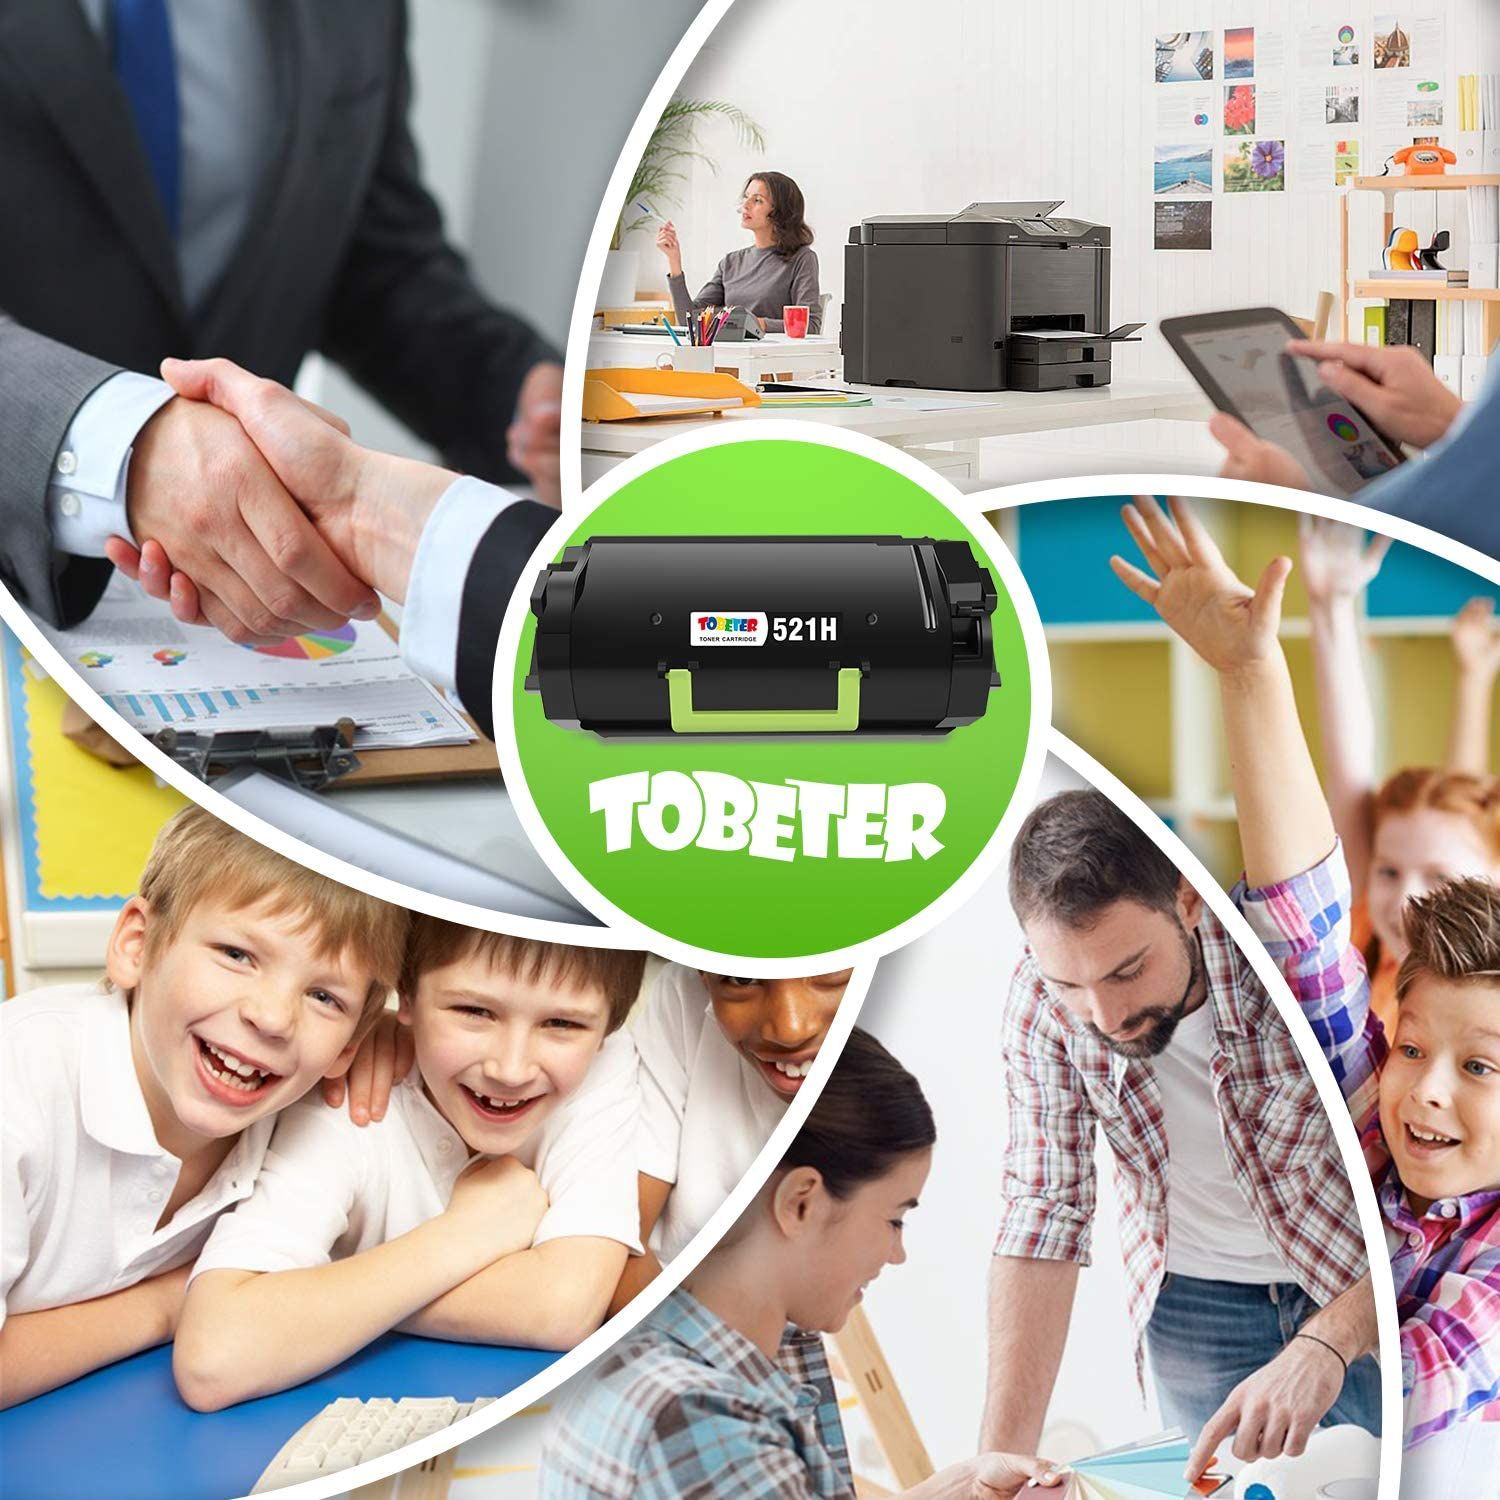 MS812 Printer ToBeter 521H 52D1H00 High Yield Compatible Toner Cartridge for Lexmark MS710 MS711 MS810 up to 25,000 Pages MS811